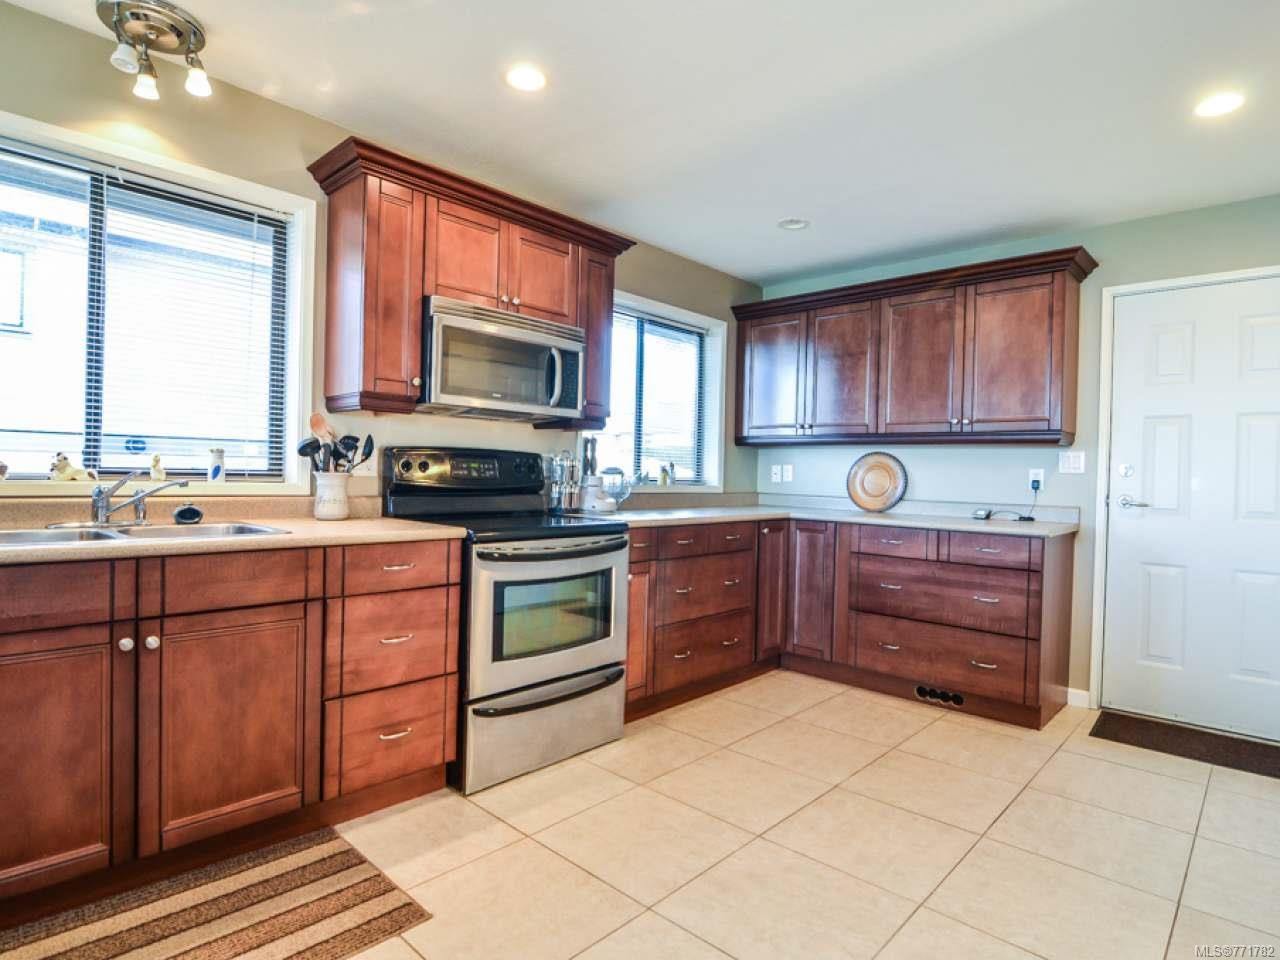 Photo 17: Photos: 451 S McLean St in CAMPBELL RIVER: CR Campbell River Central House for sale (Campbell River)  : MLS®# 771782